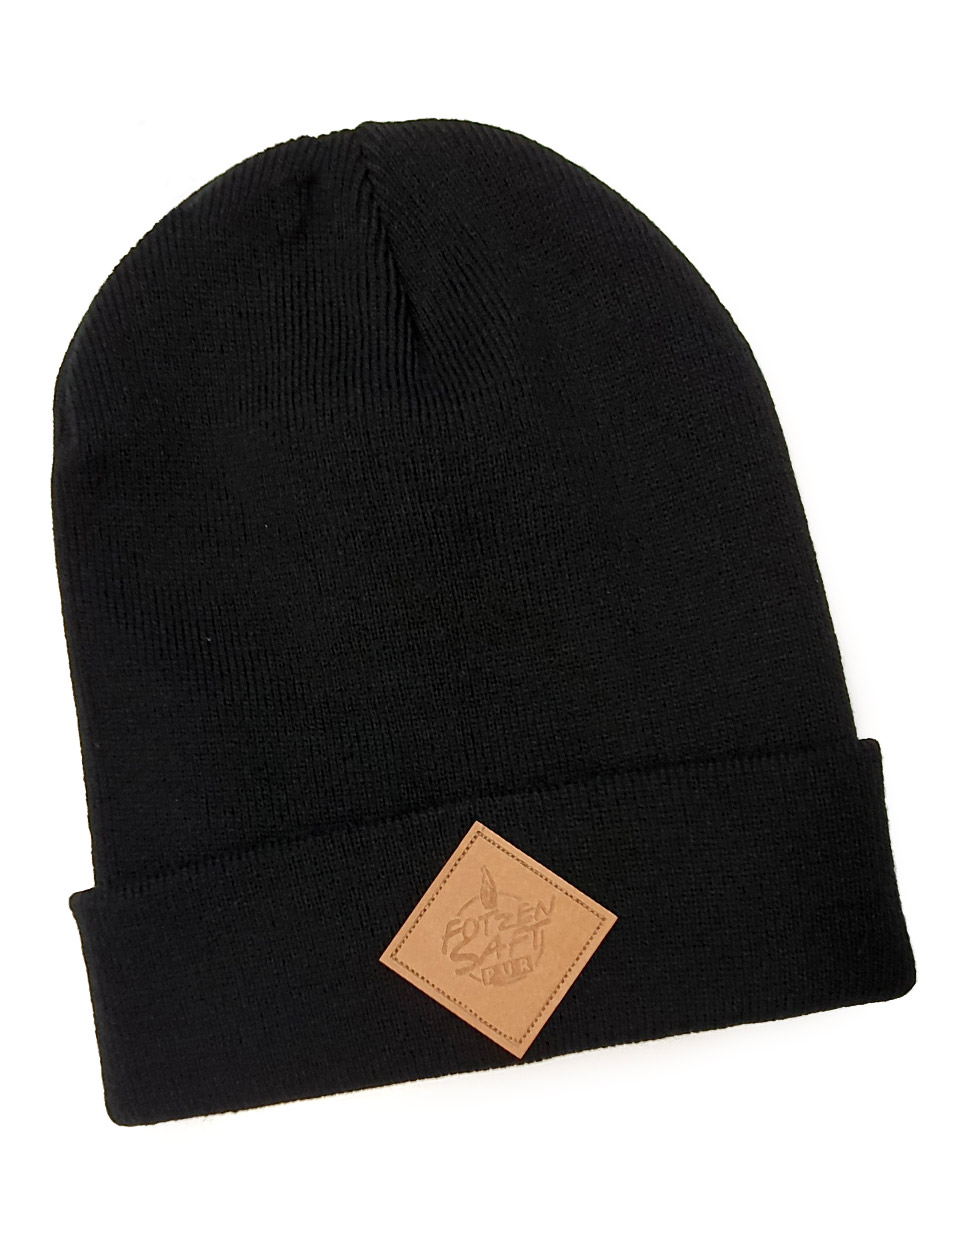 Fotzensaft Cuffed Beanie Logopatch